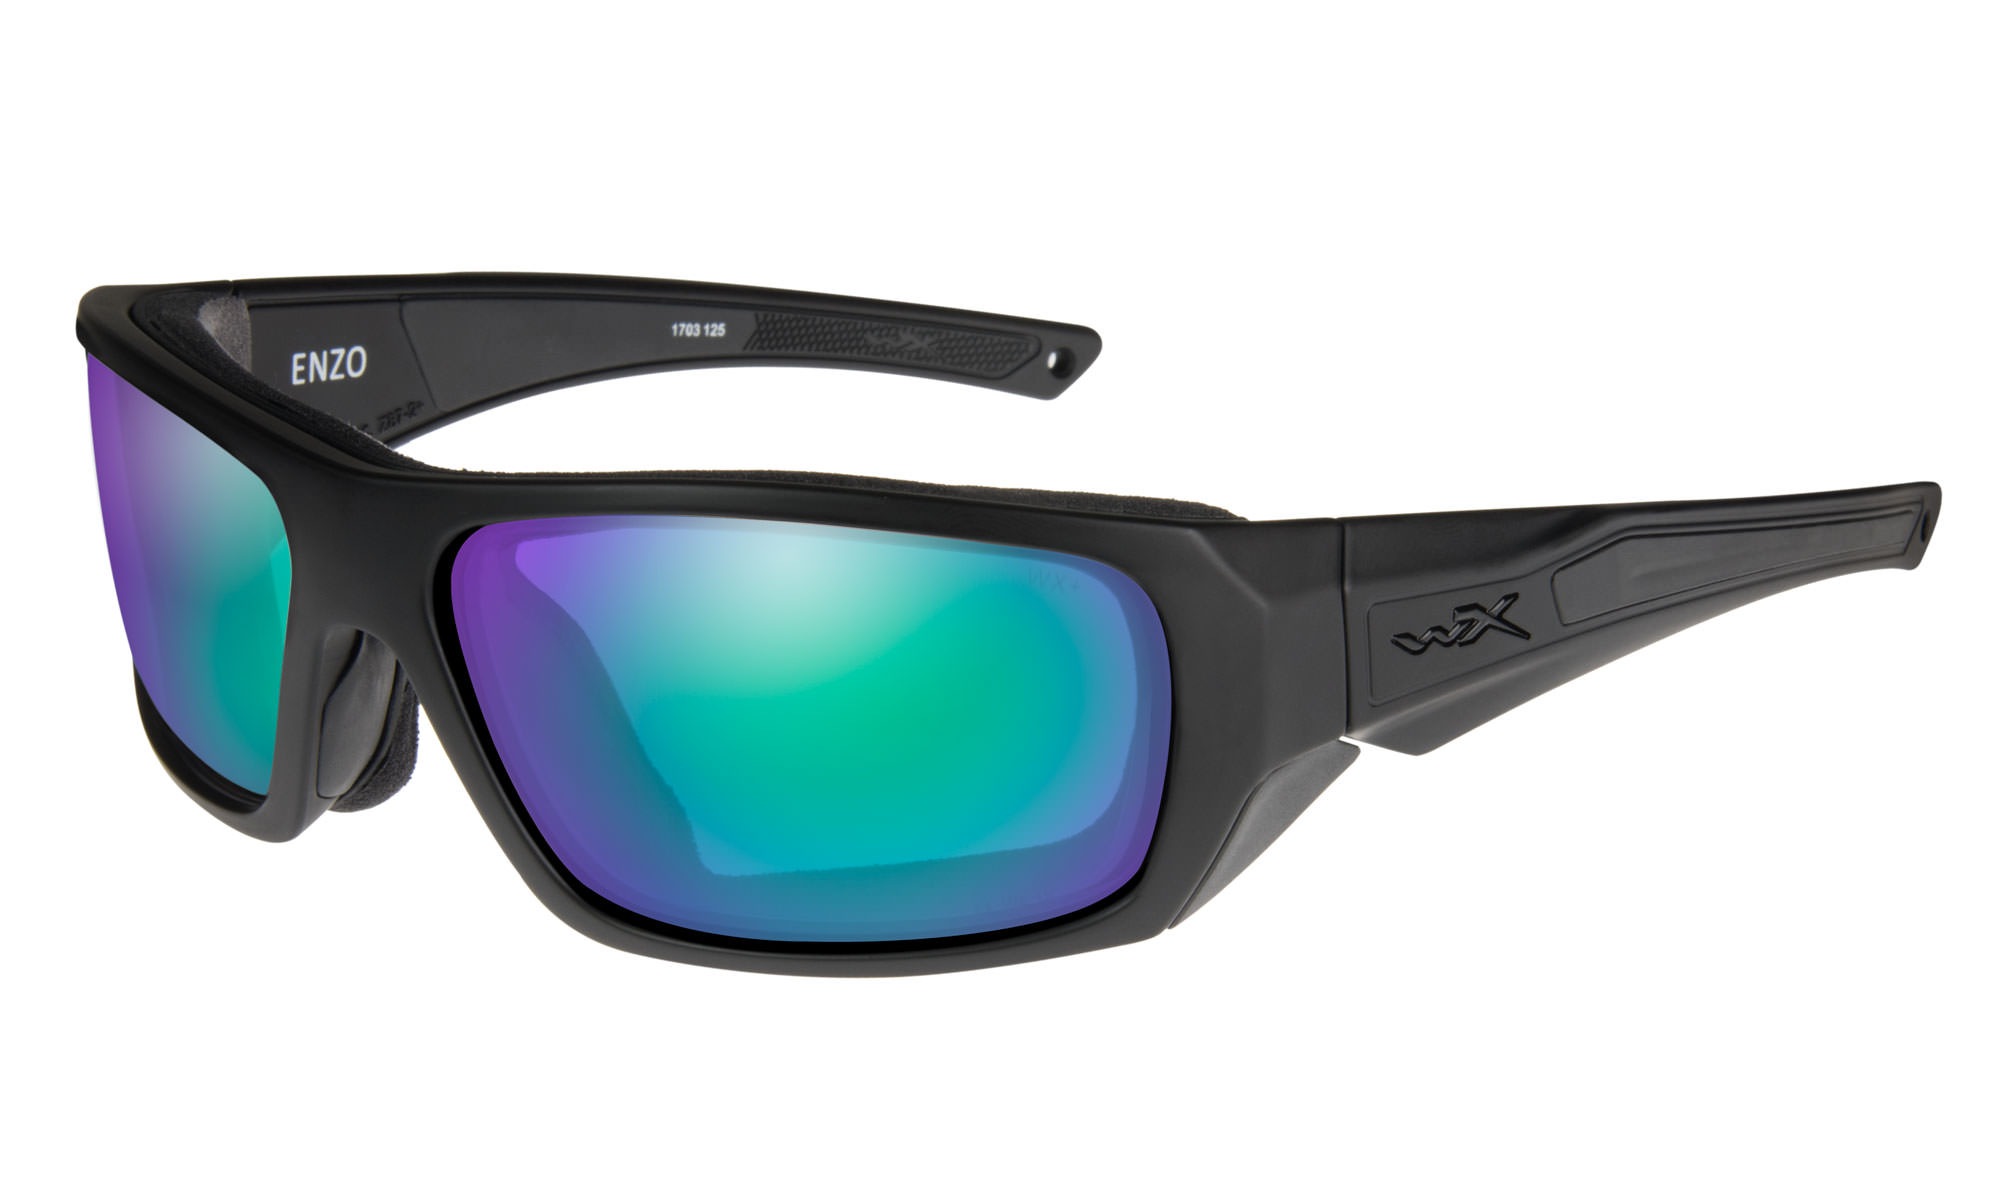 2c2e67d6b8ed Wiley-X WX Enzo Matte Black with Polarized Emerald Mirror Lenses ...